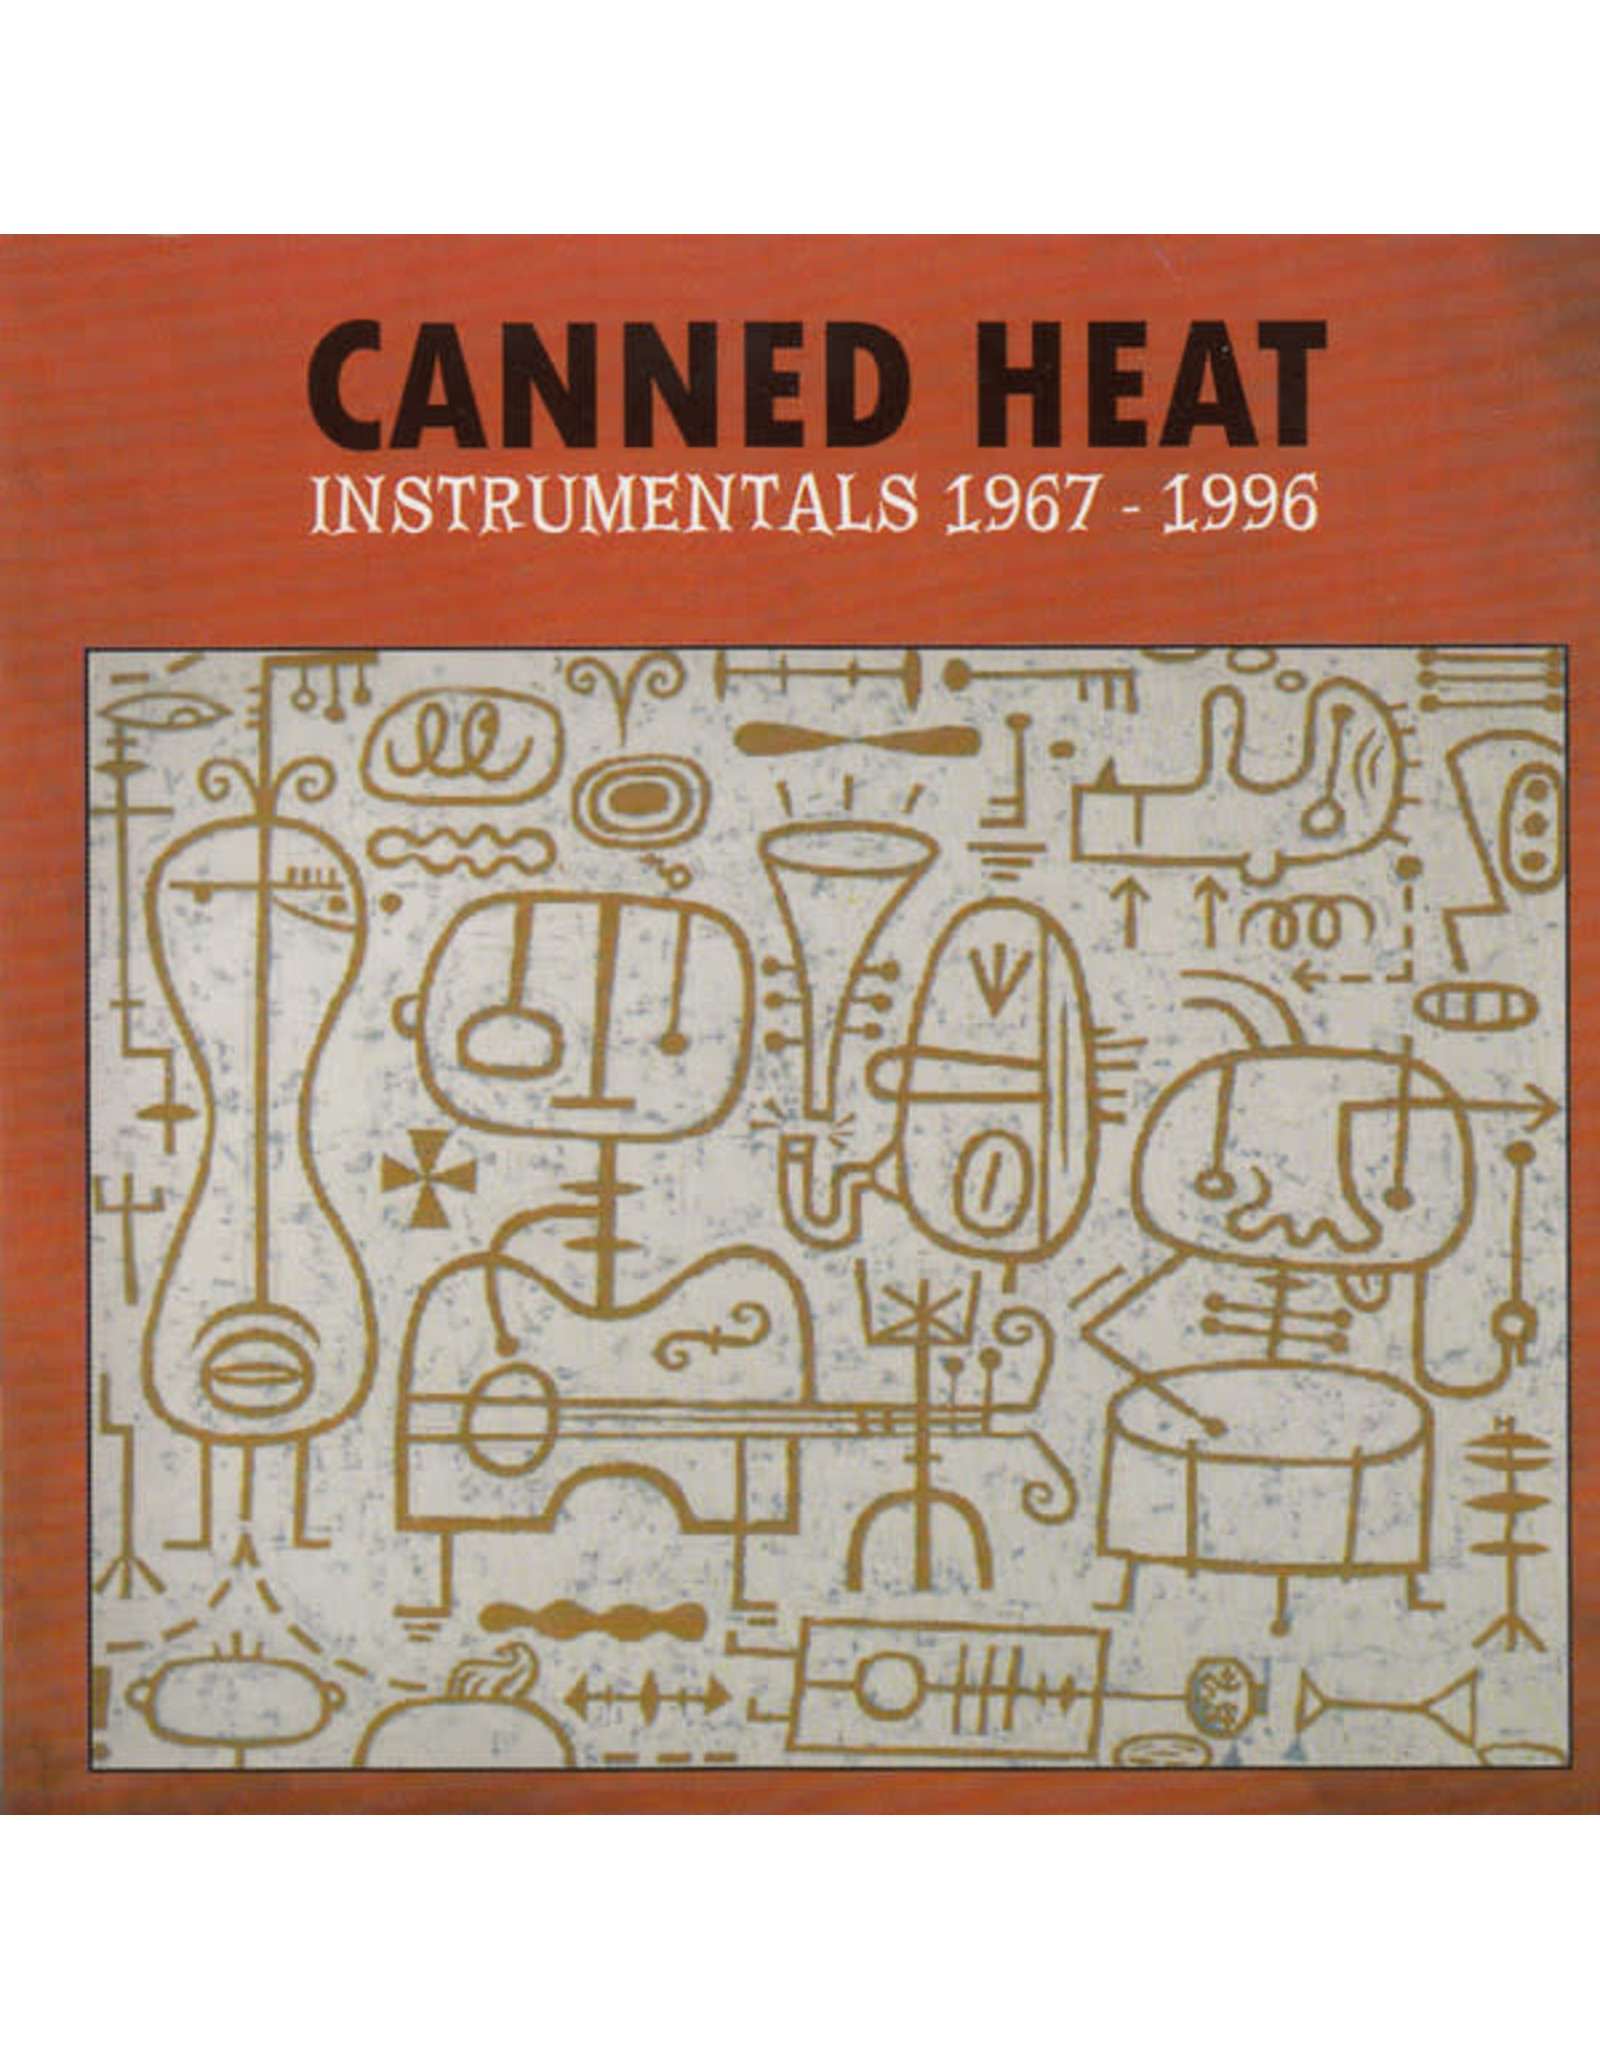 Canned Heat - Instrumentals 1967 - 1996 CD